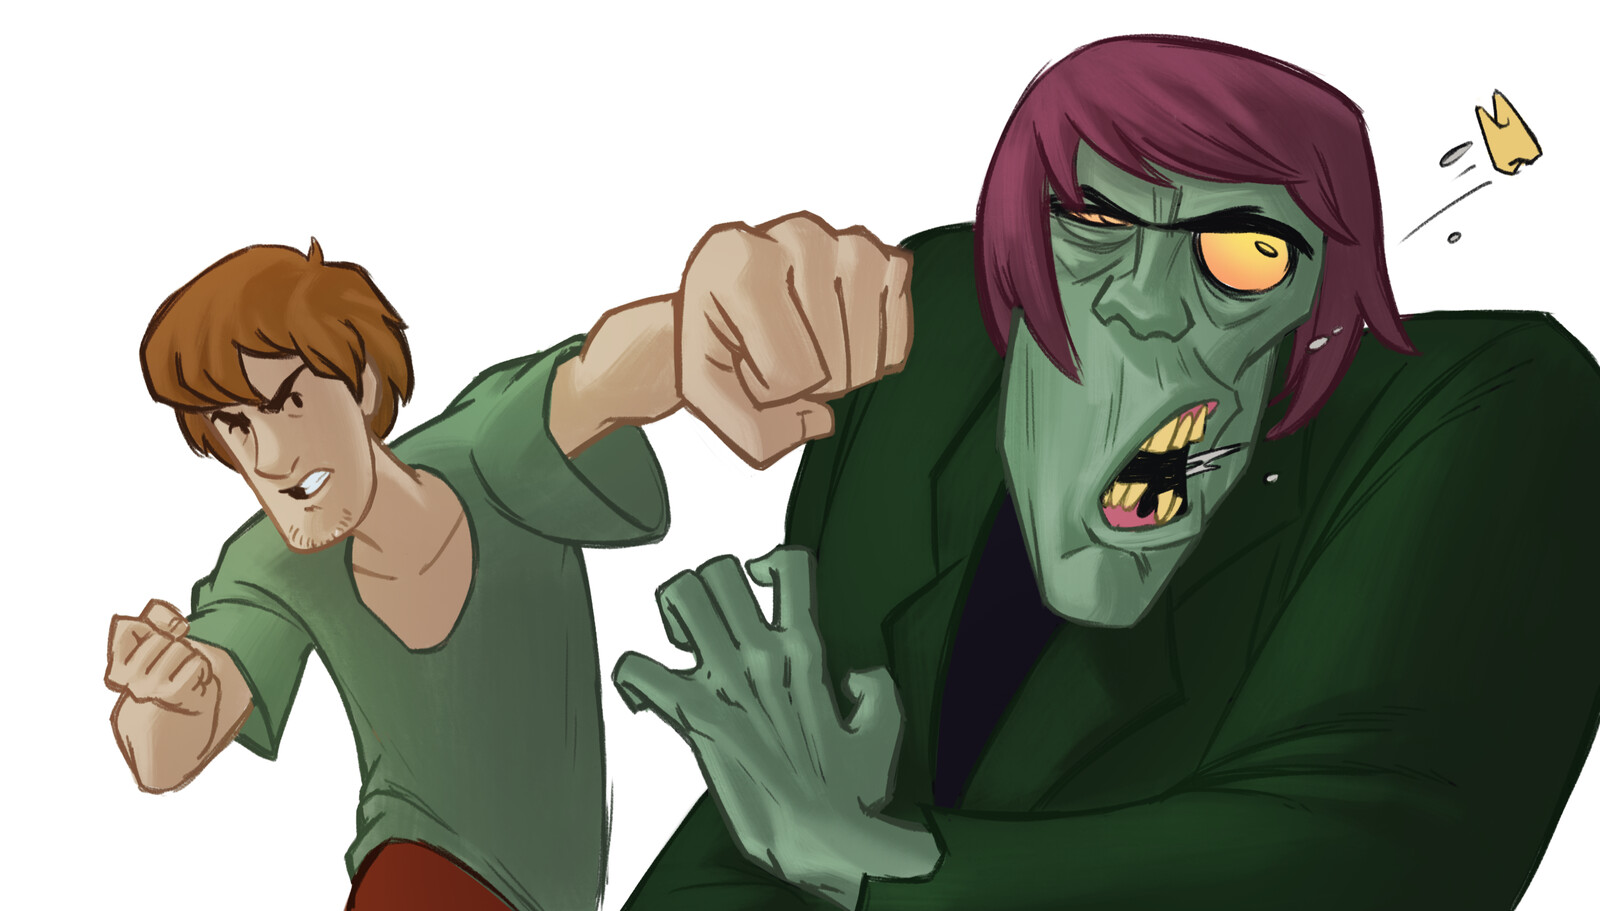 First Concept sketch, looking back, perhaps Shaggy's gesture here is a bit nicer.